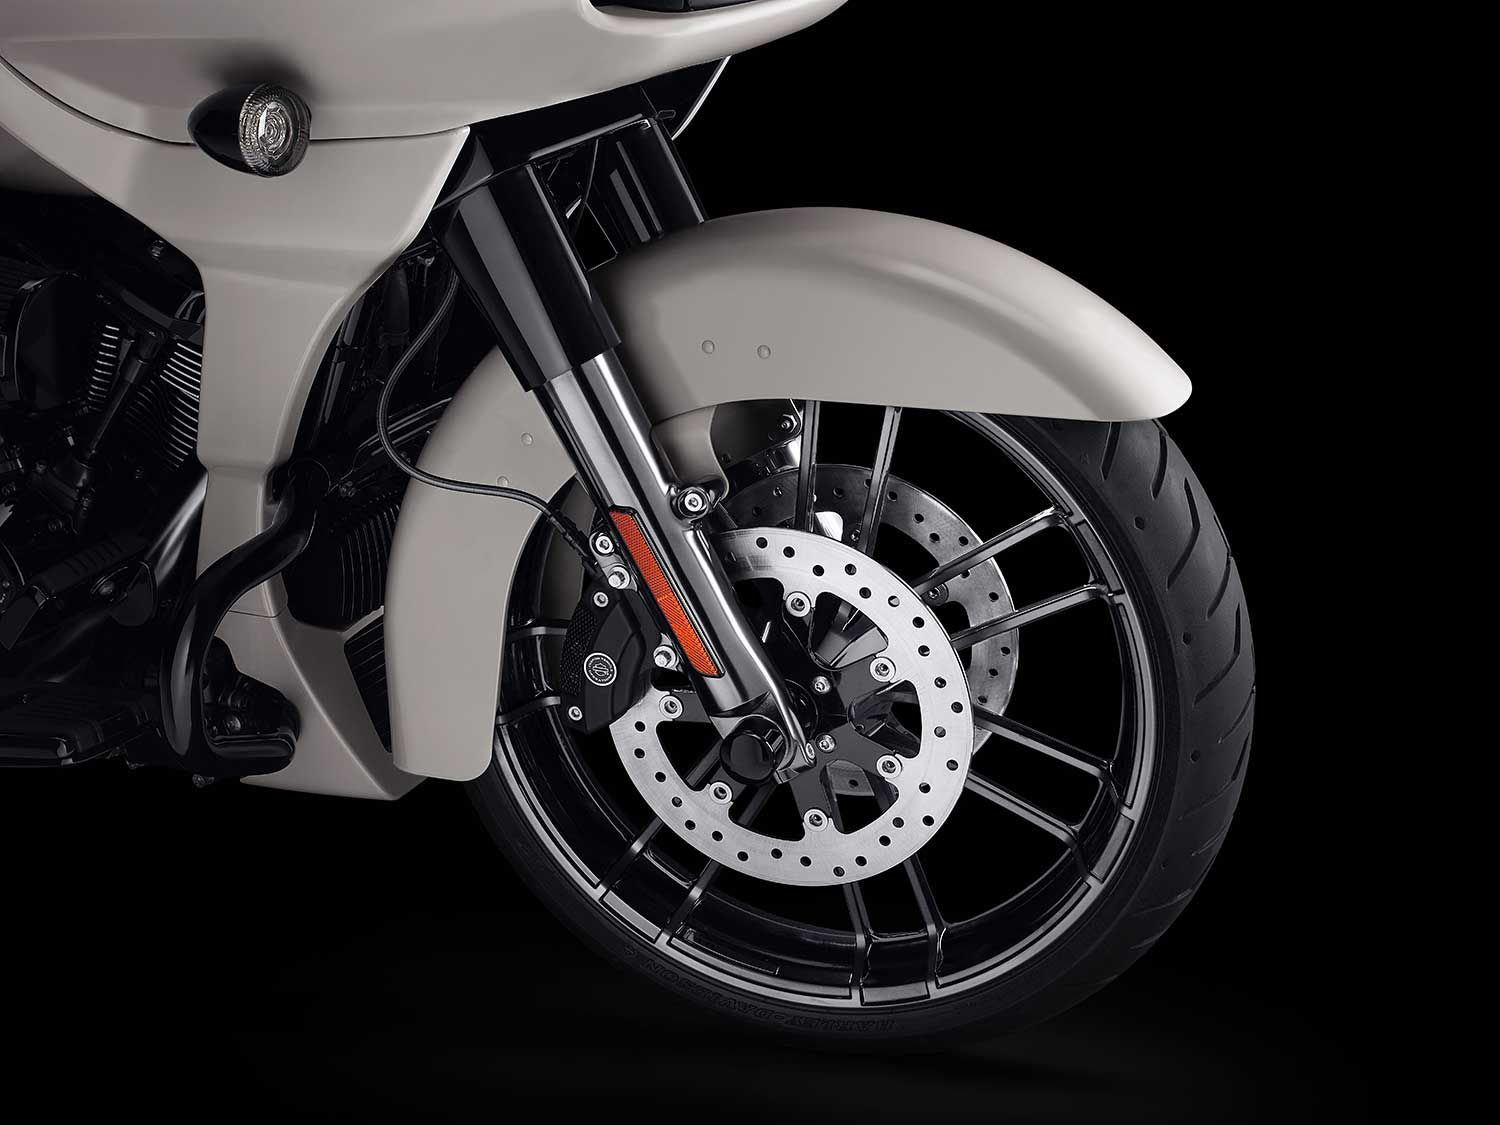 Dual-disc 300mm brakes work in conjunction with a series of electronic aids to maximize safety.